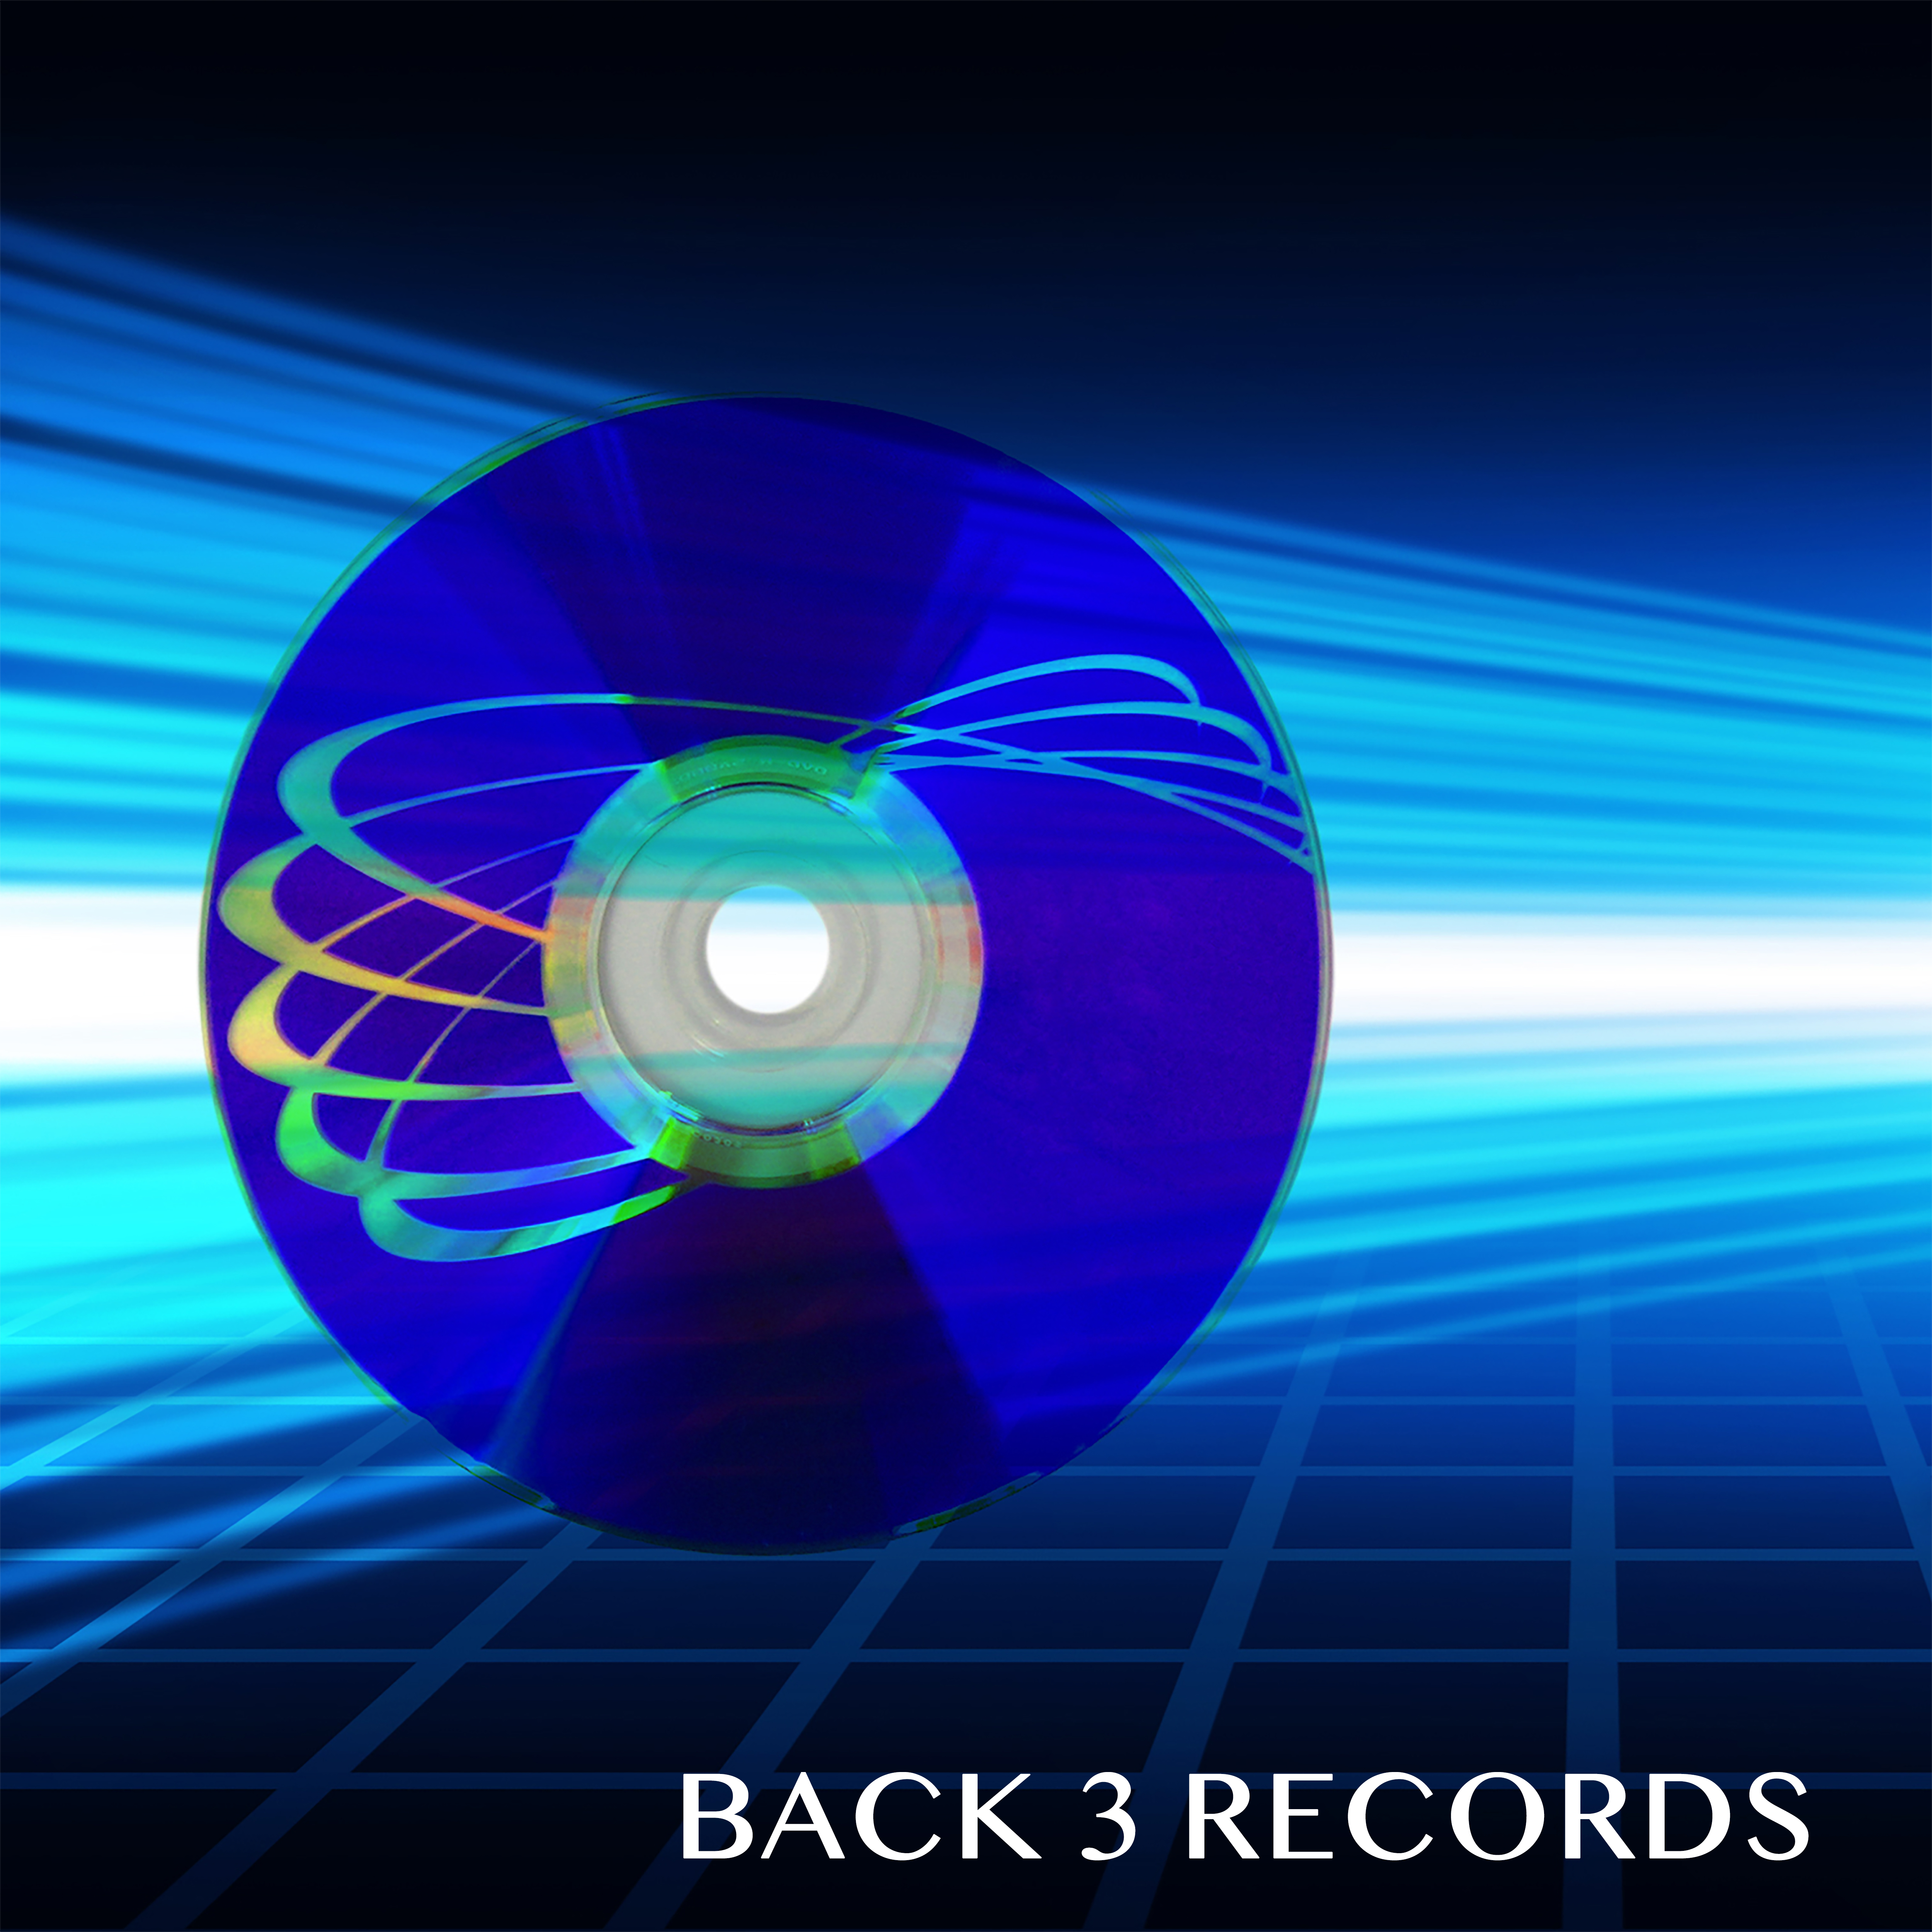 Back 3 Records